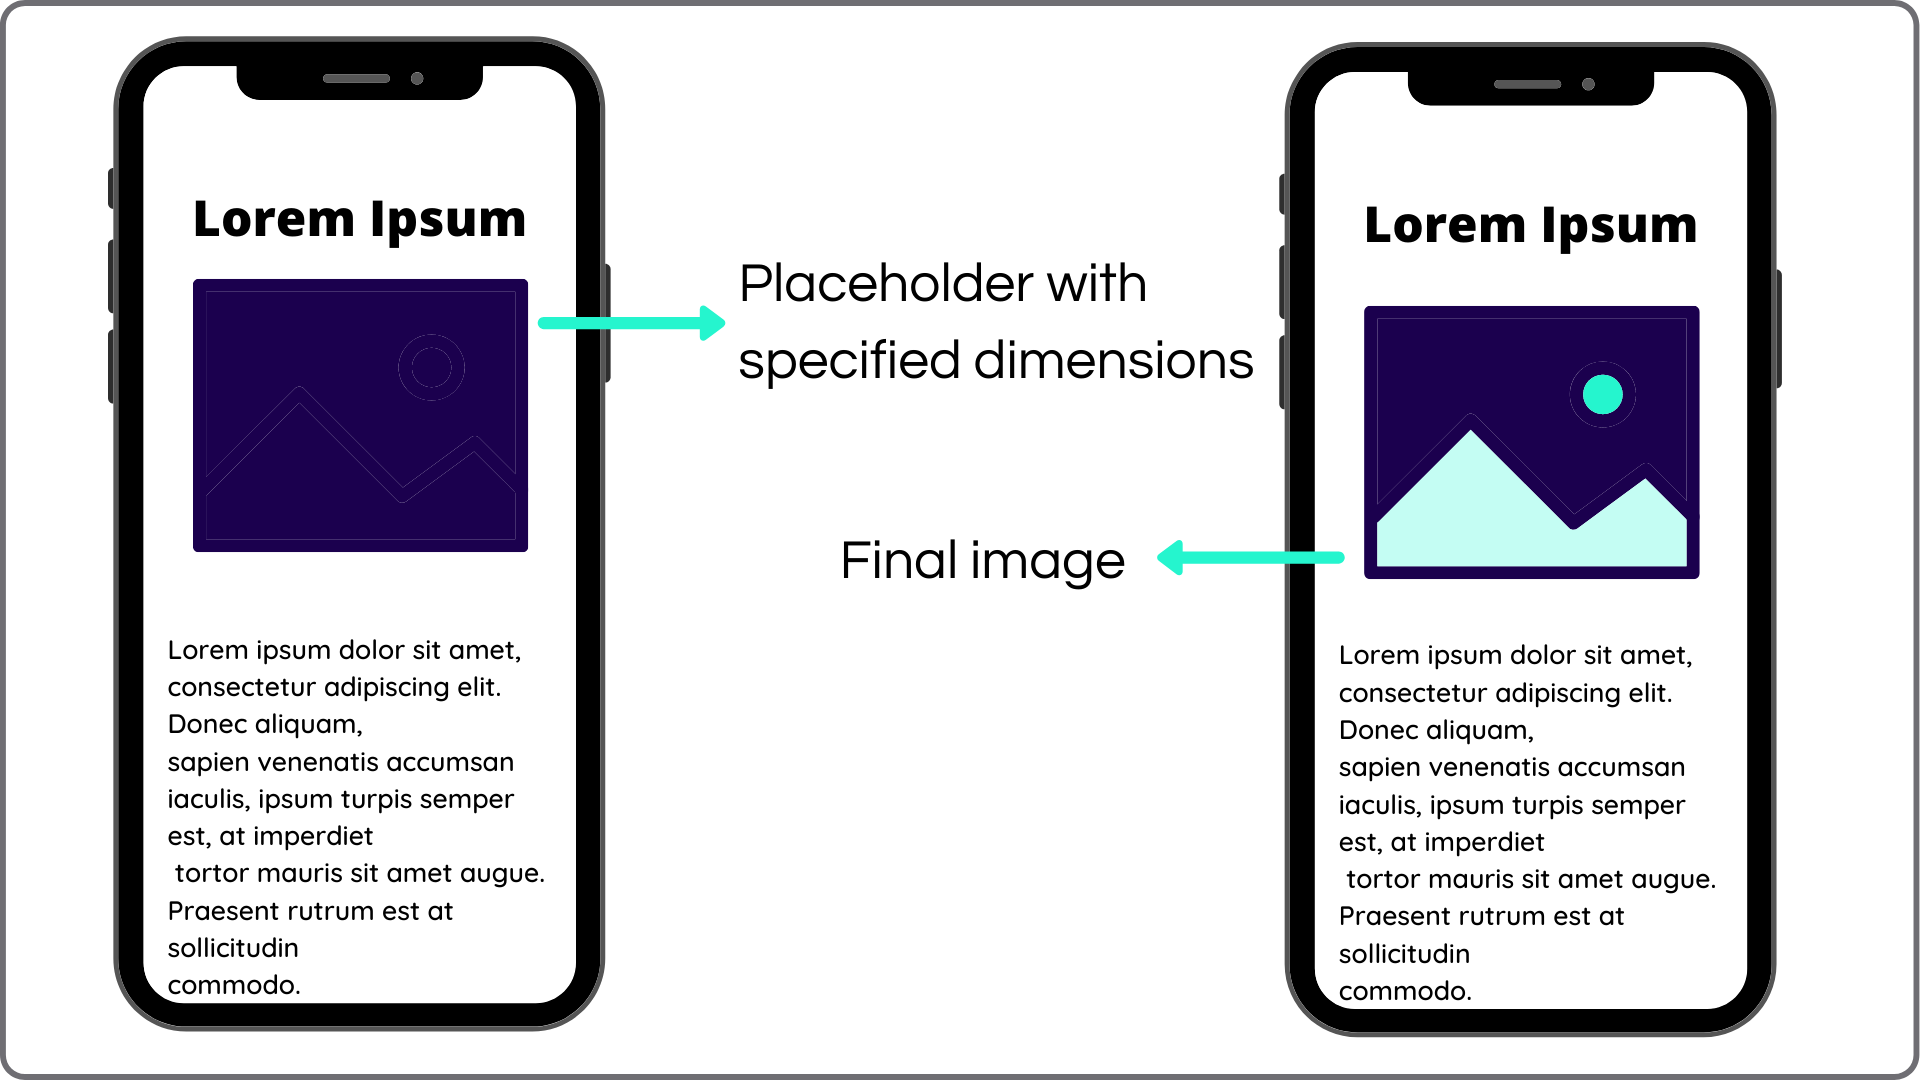 Loading images with placeholder